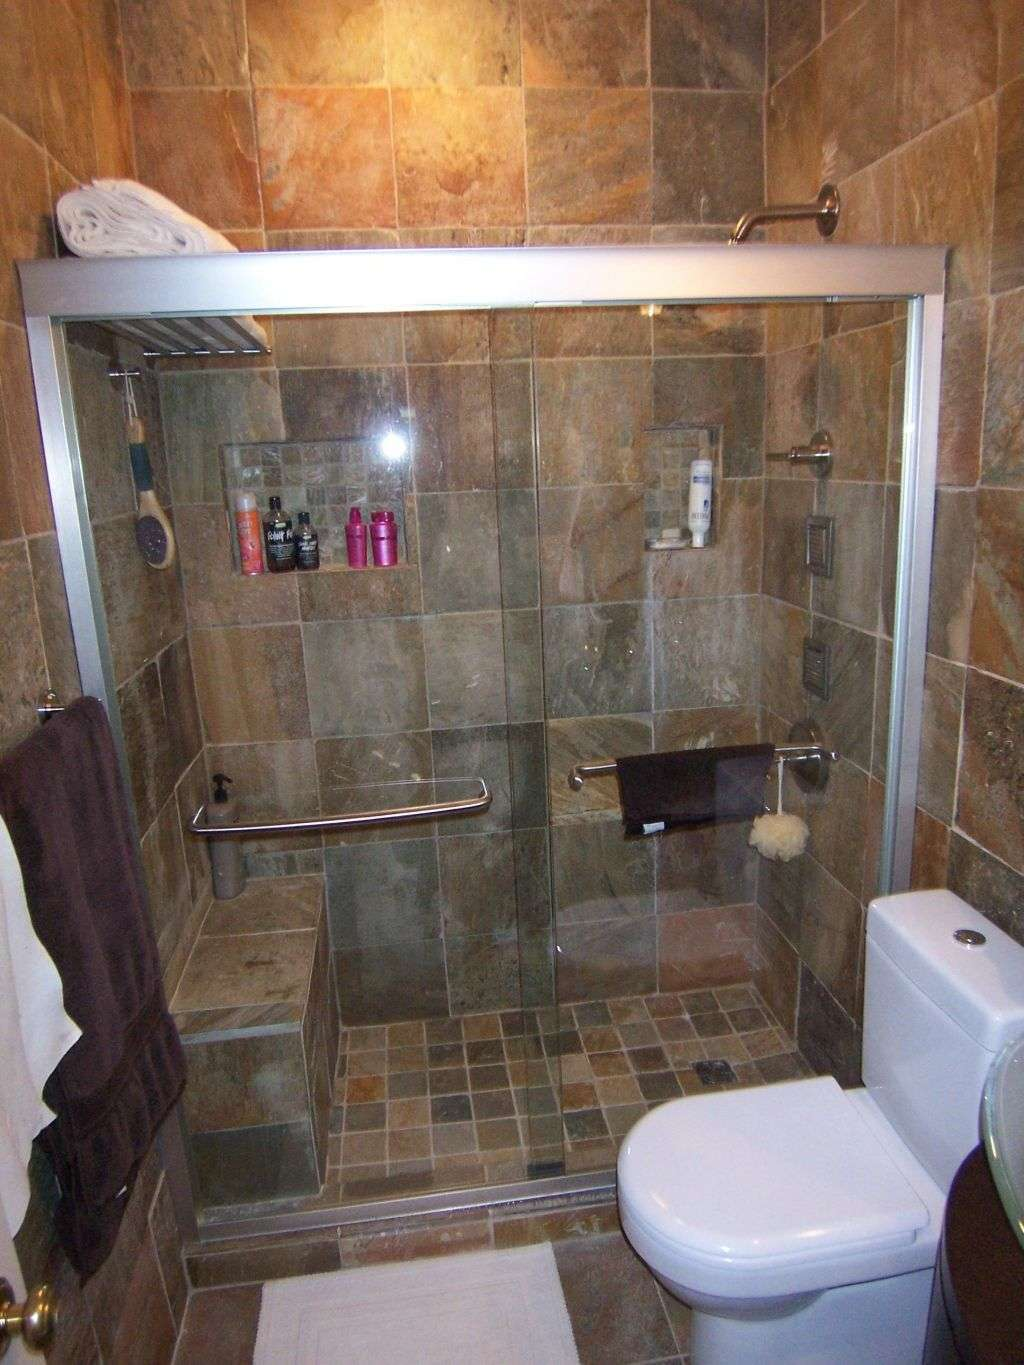 40 wonderful pictures and ideas of 1920s bathroom tile designs for Small bath ideas